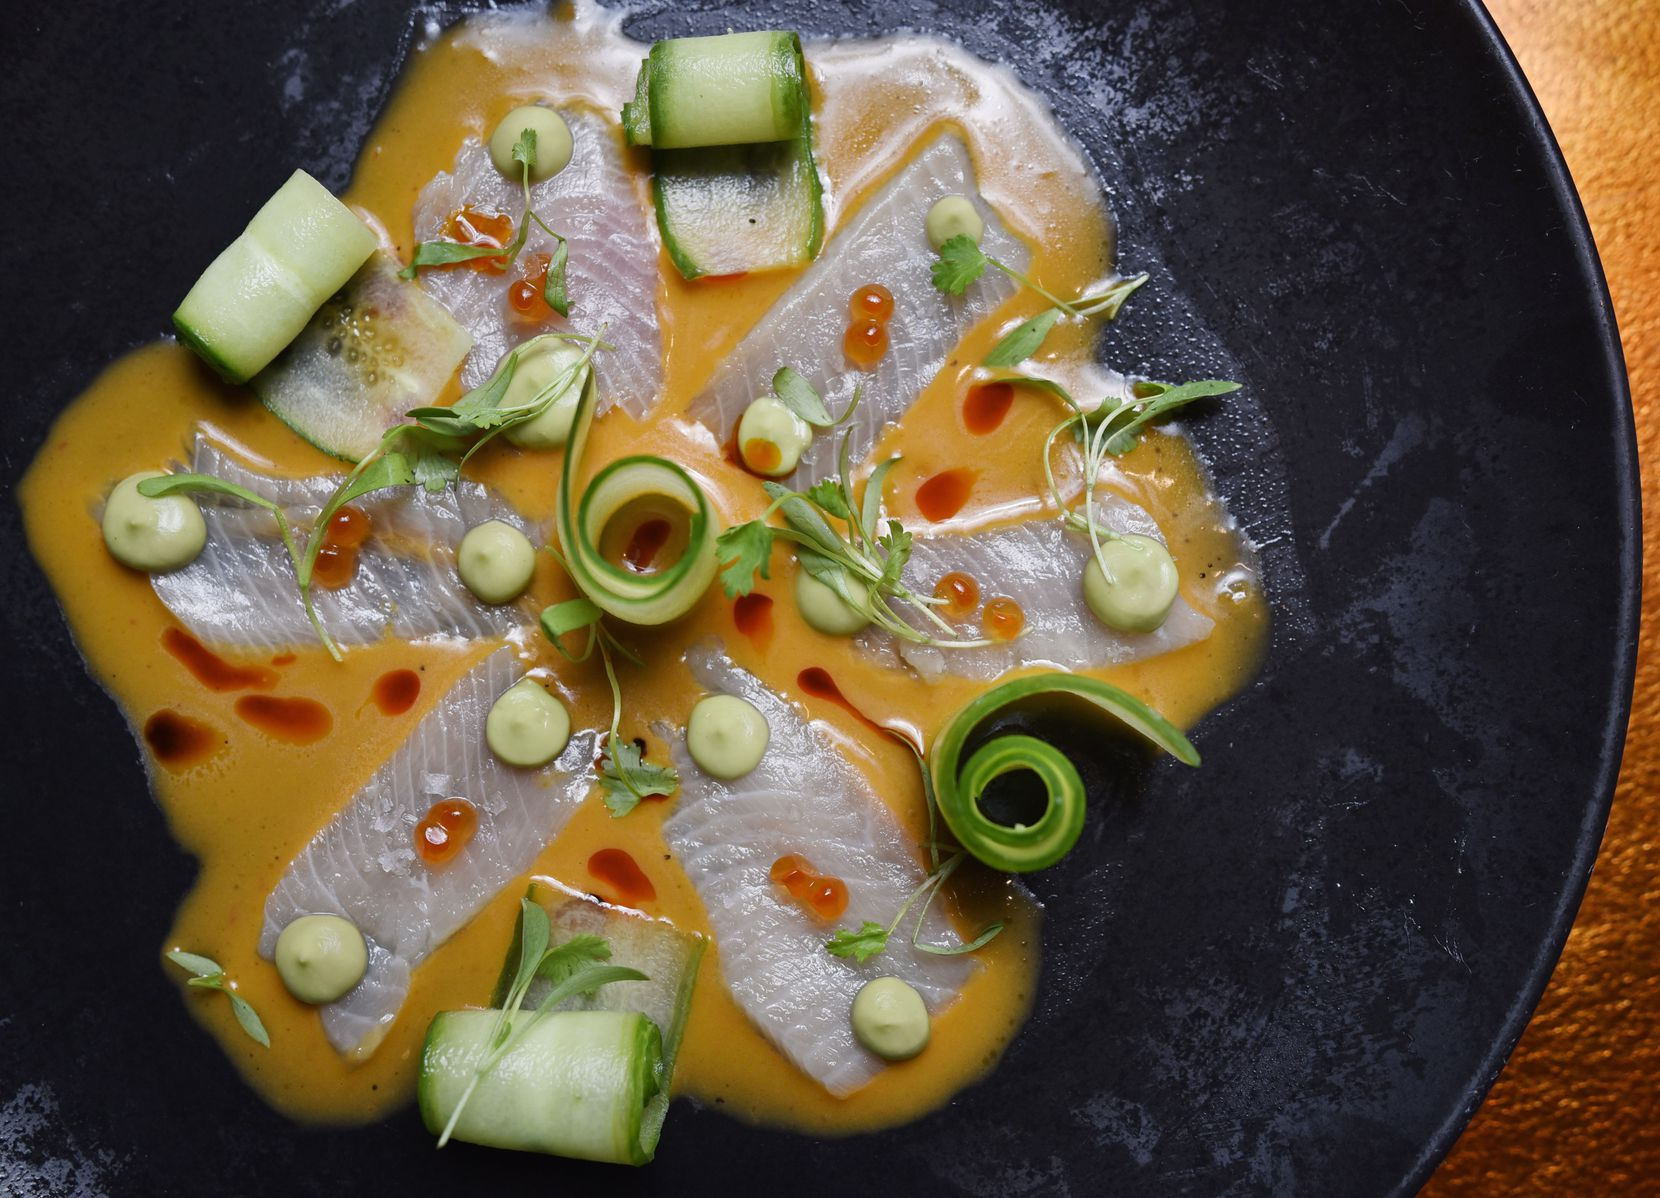 Yellowtail tiradito with rocoto, avocado and cucumber